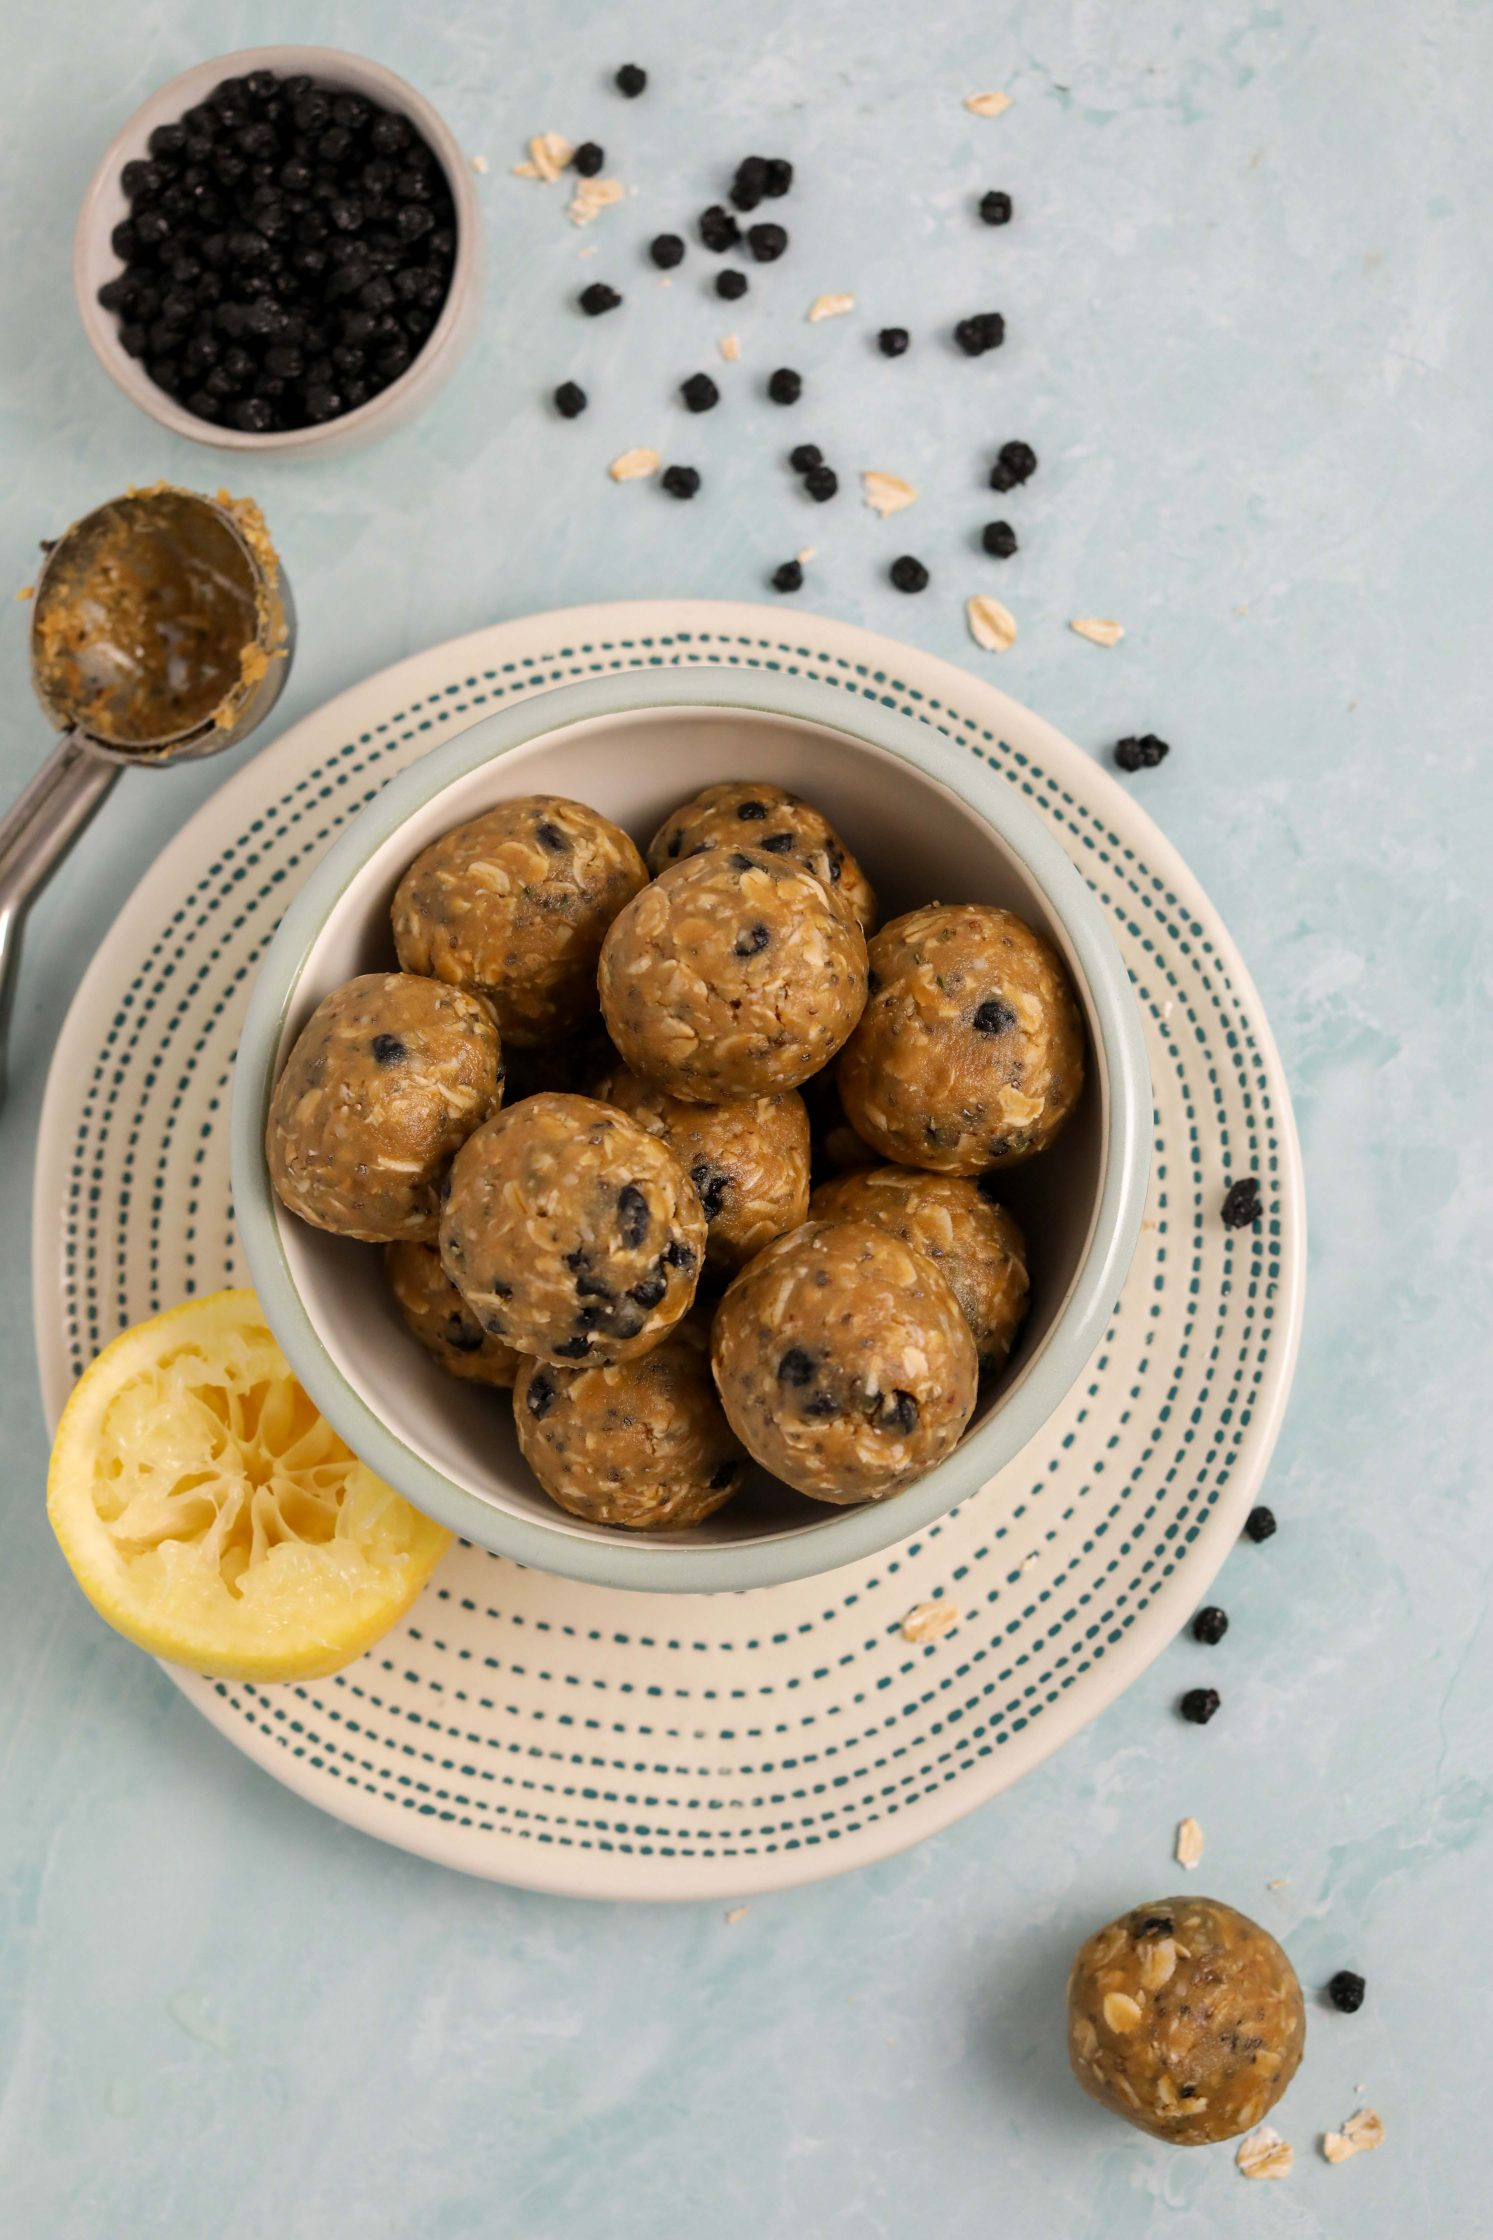 Blueberry Muffin Energy Balls by Flora & Vino